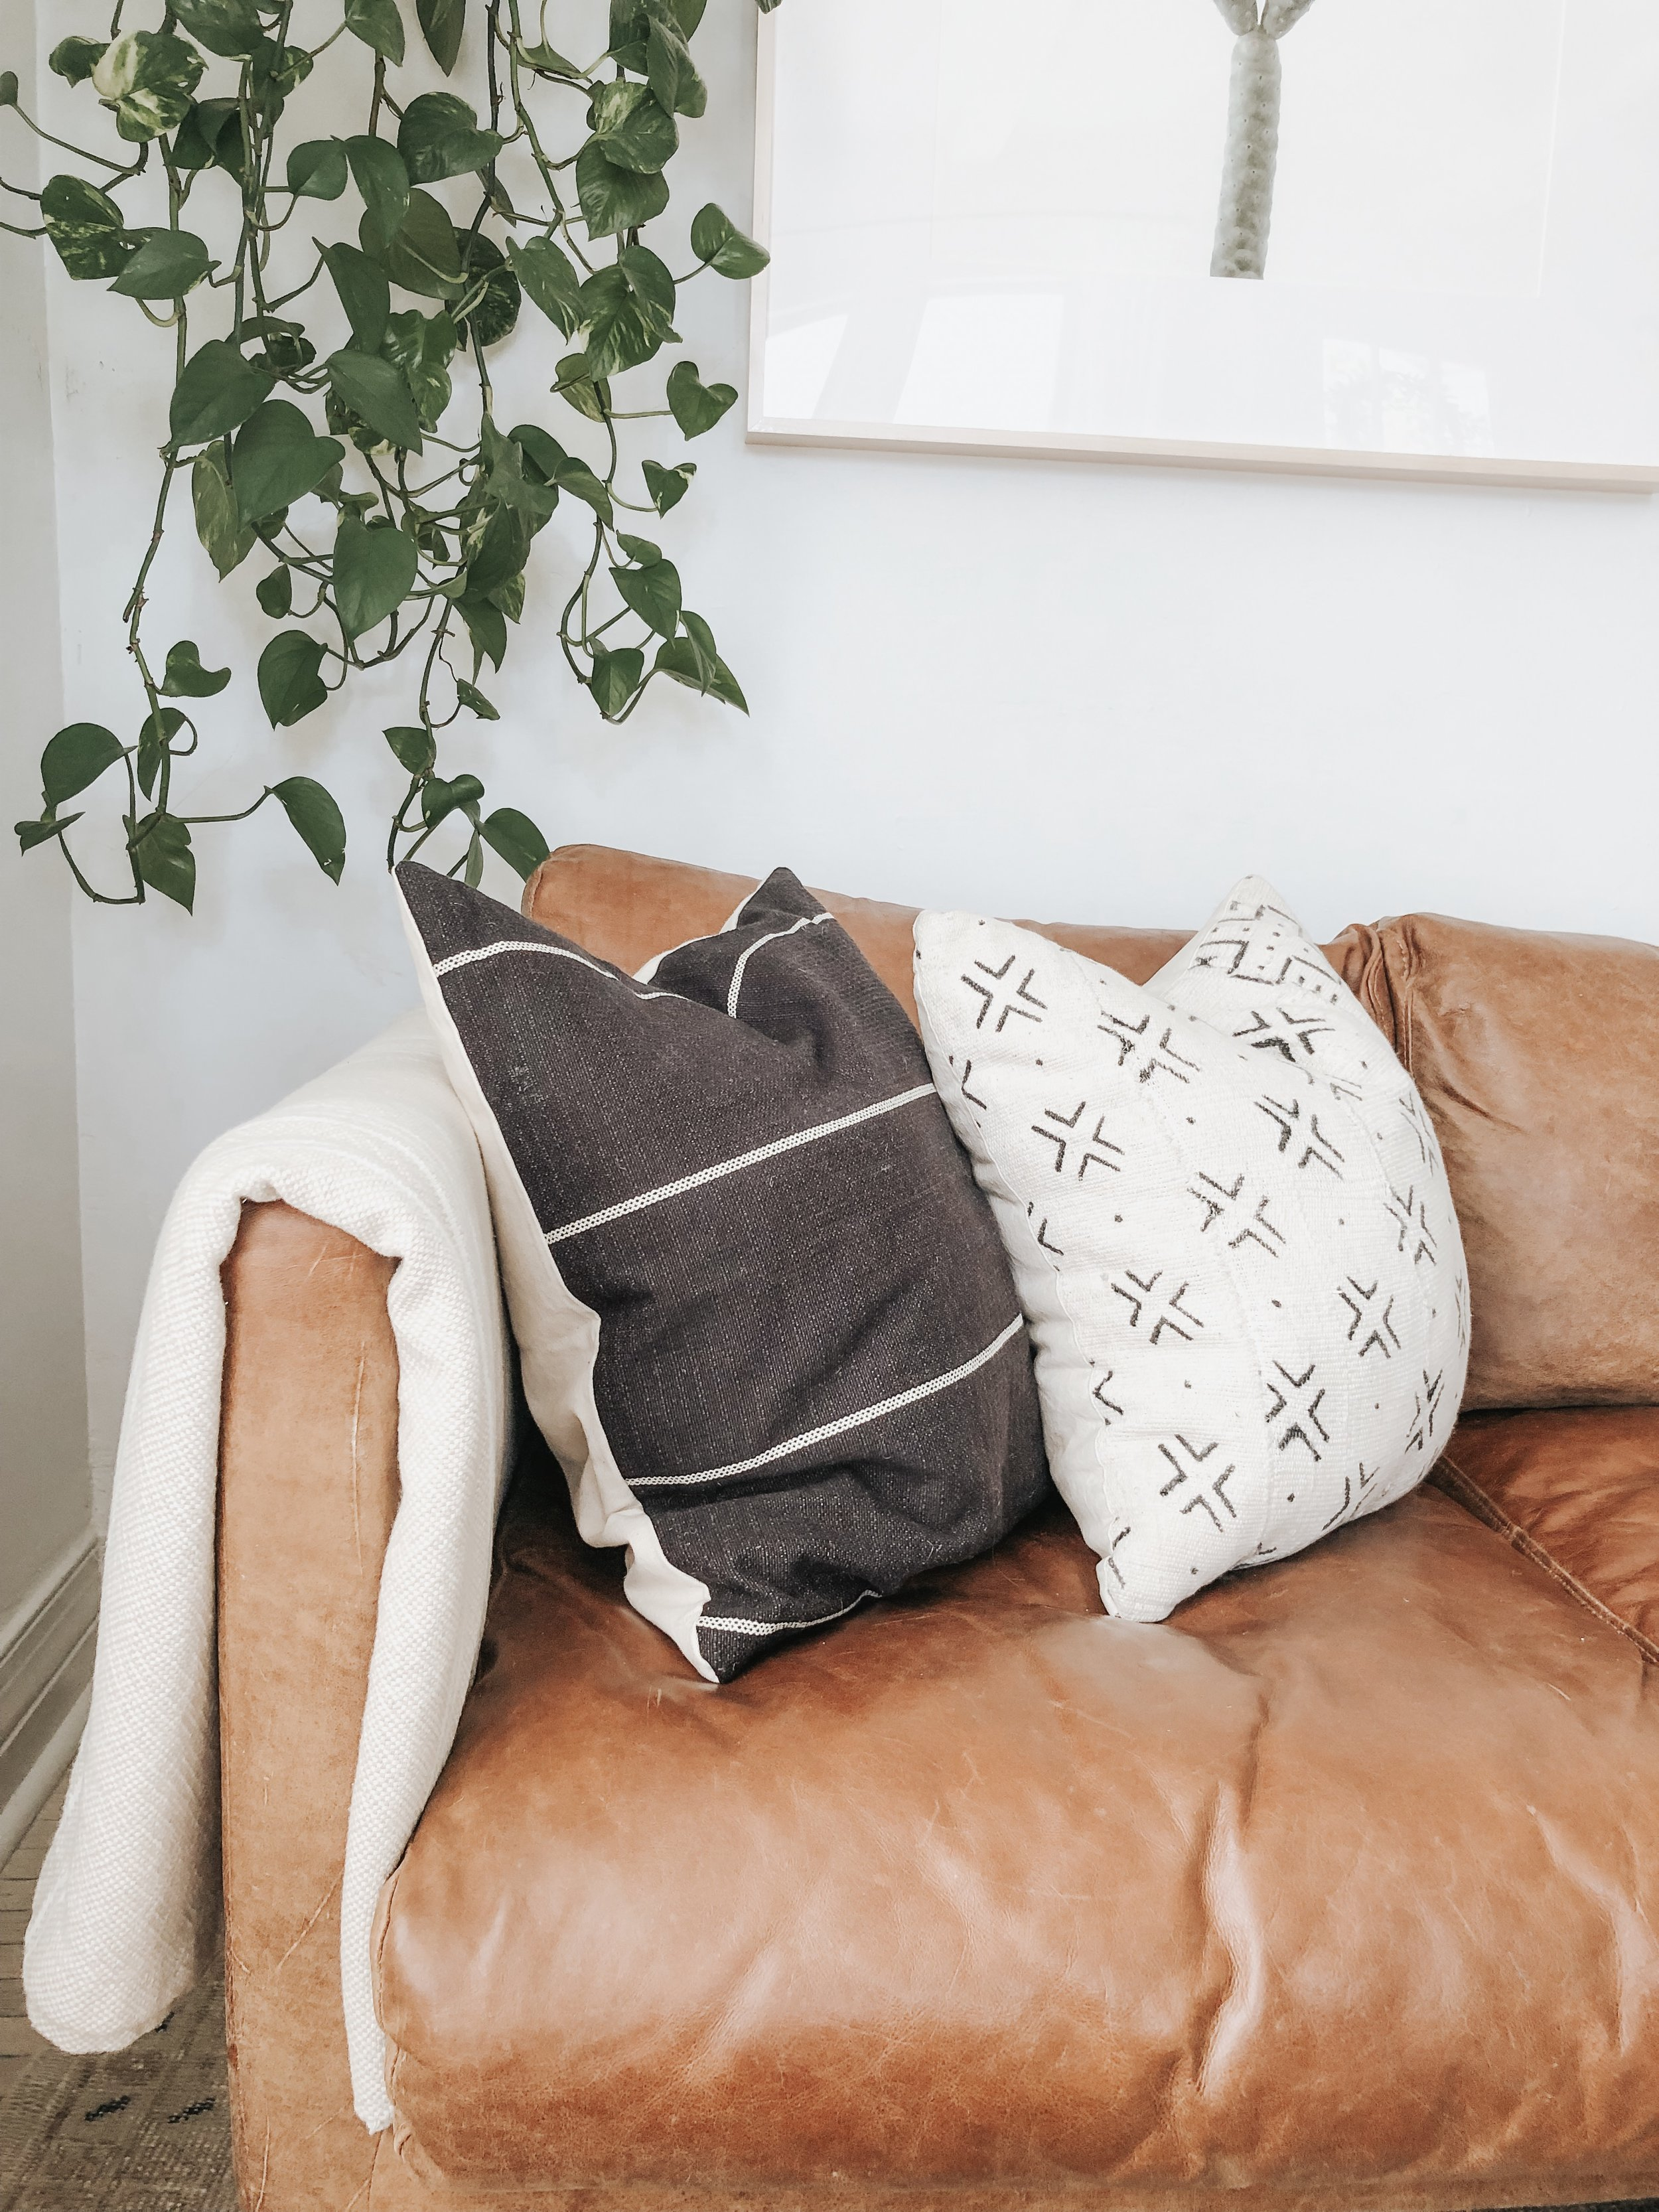 Sources:  Black striped pillow  |  Throw blanket